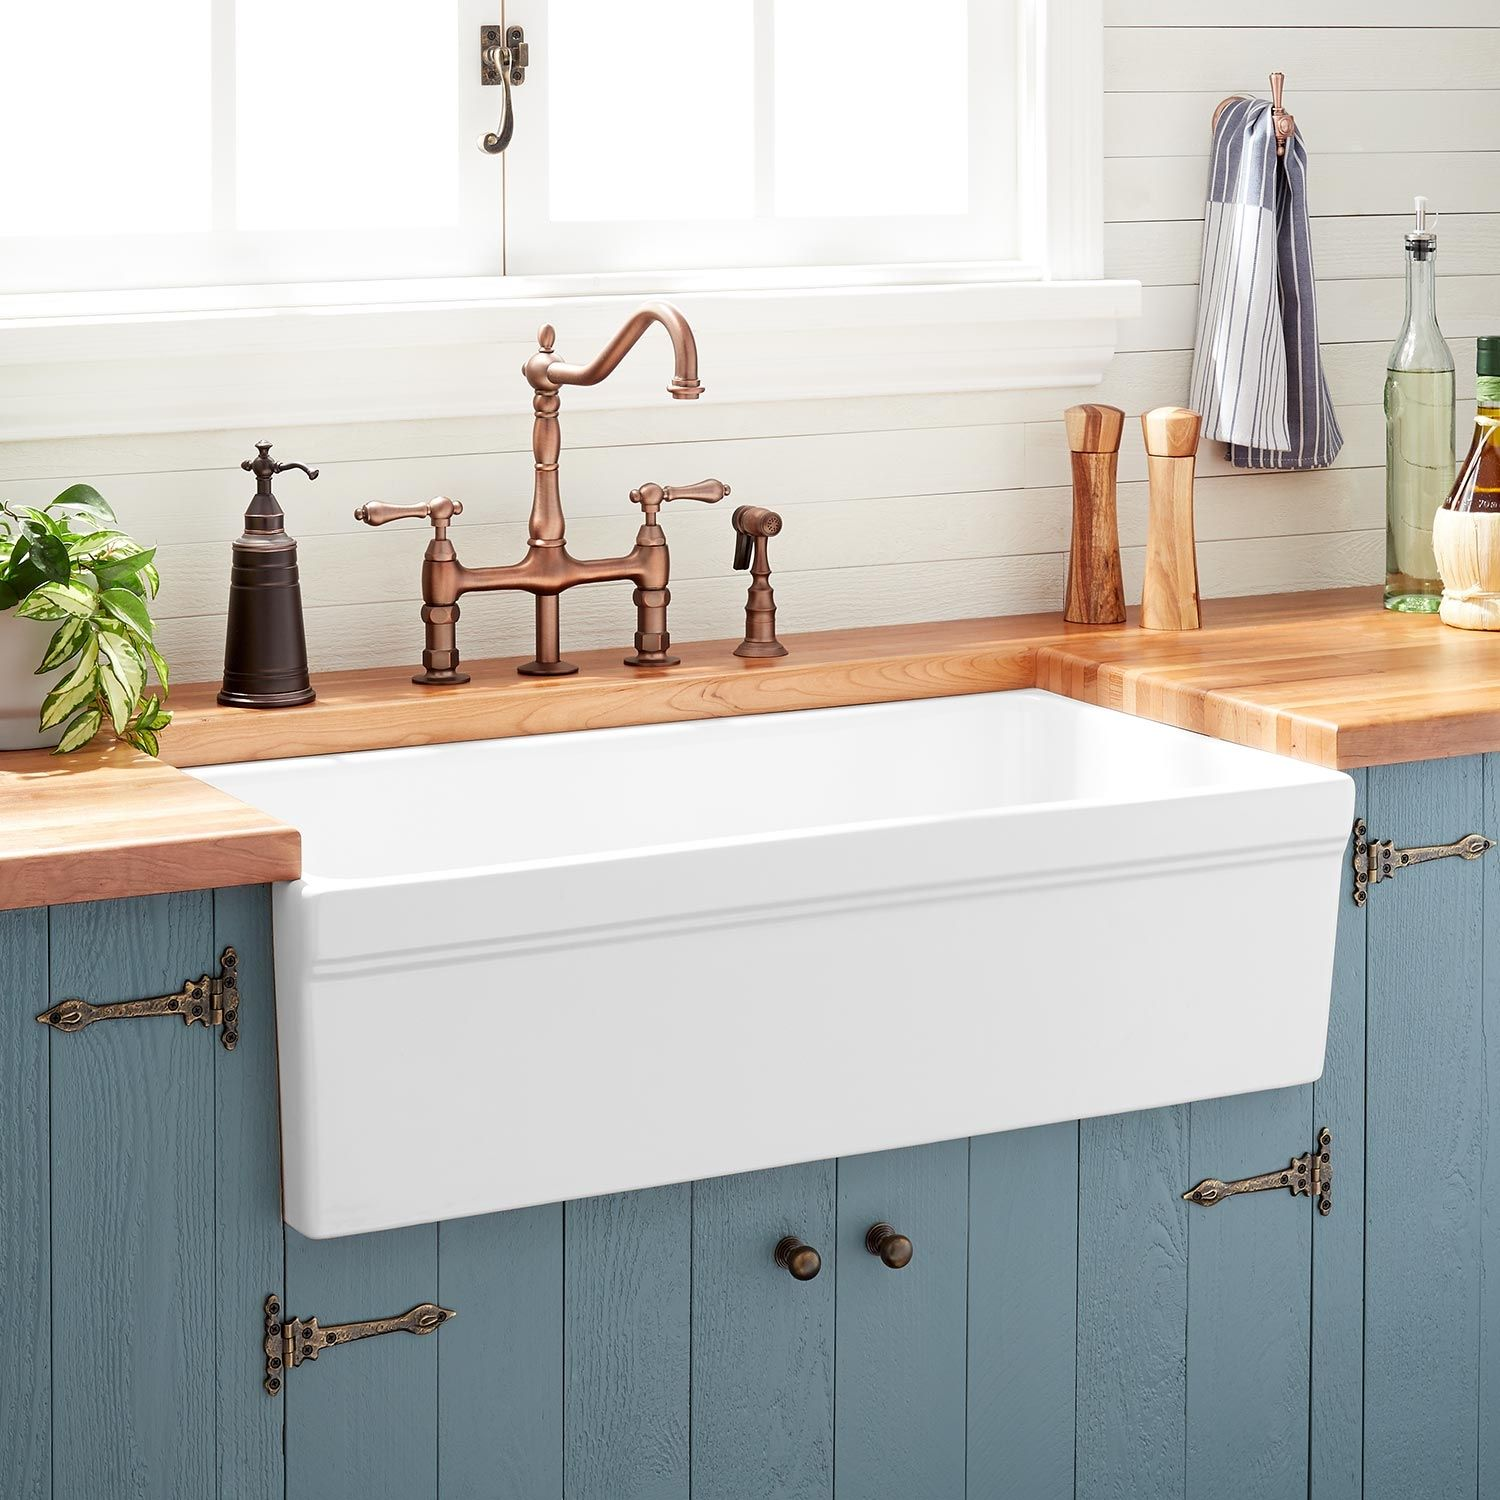 36 Gallo Fireclay Farmhouse Sink With Drainboard White Kitchen Kitchen Projects Fireclay Farmhouse Sink White Farmhouse Sink Farmhouse Sink Kitchen